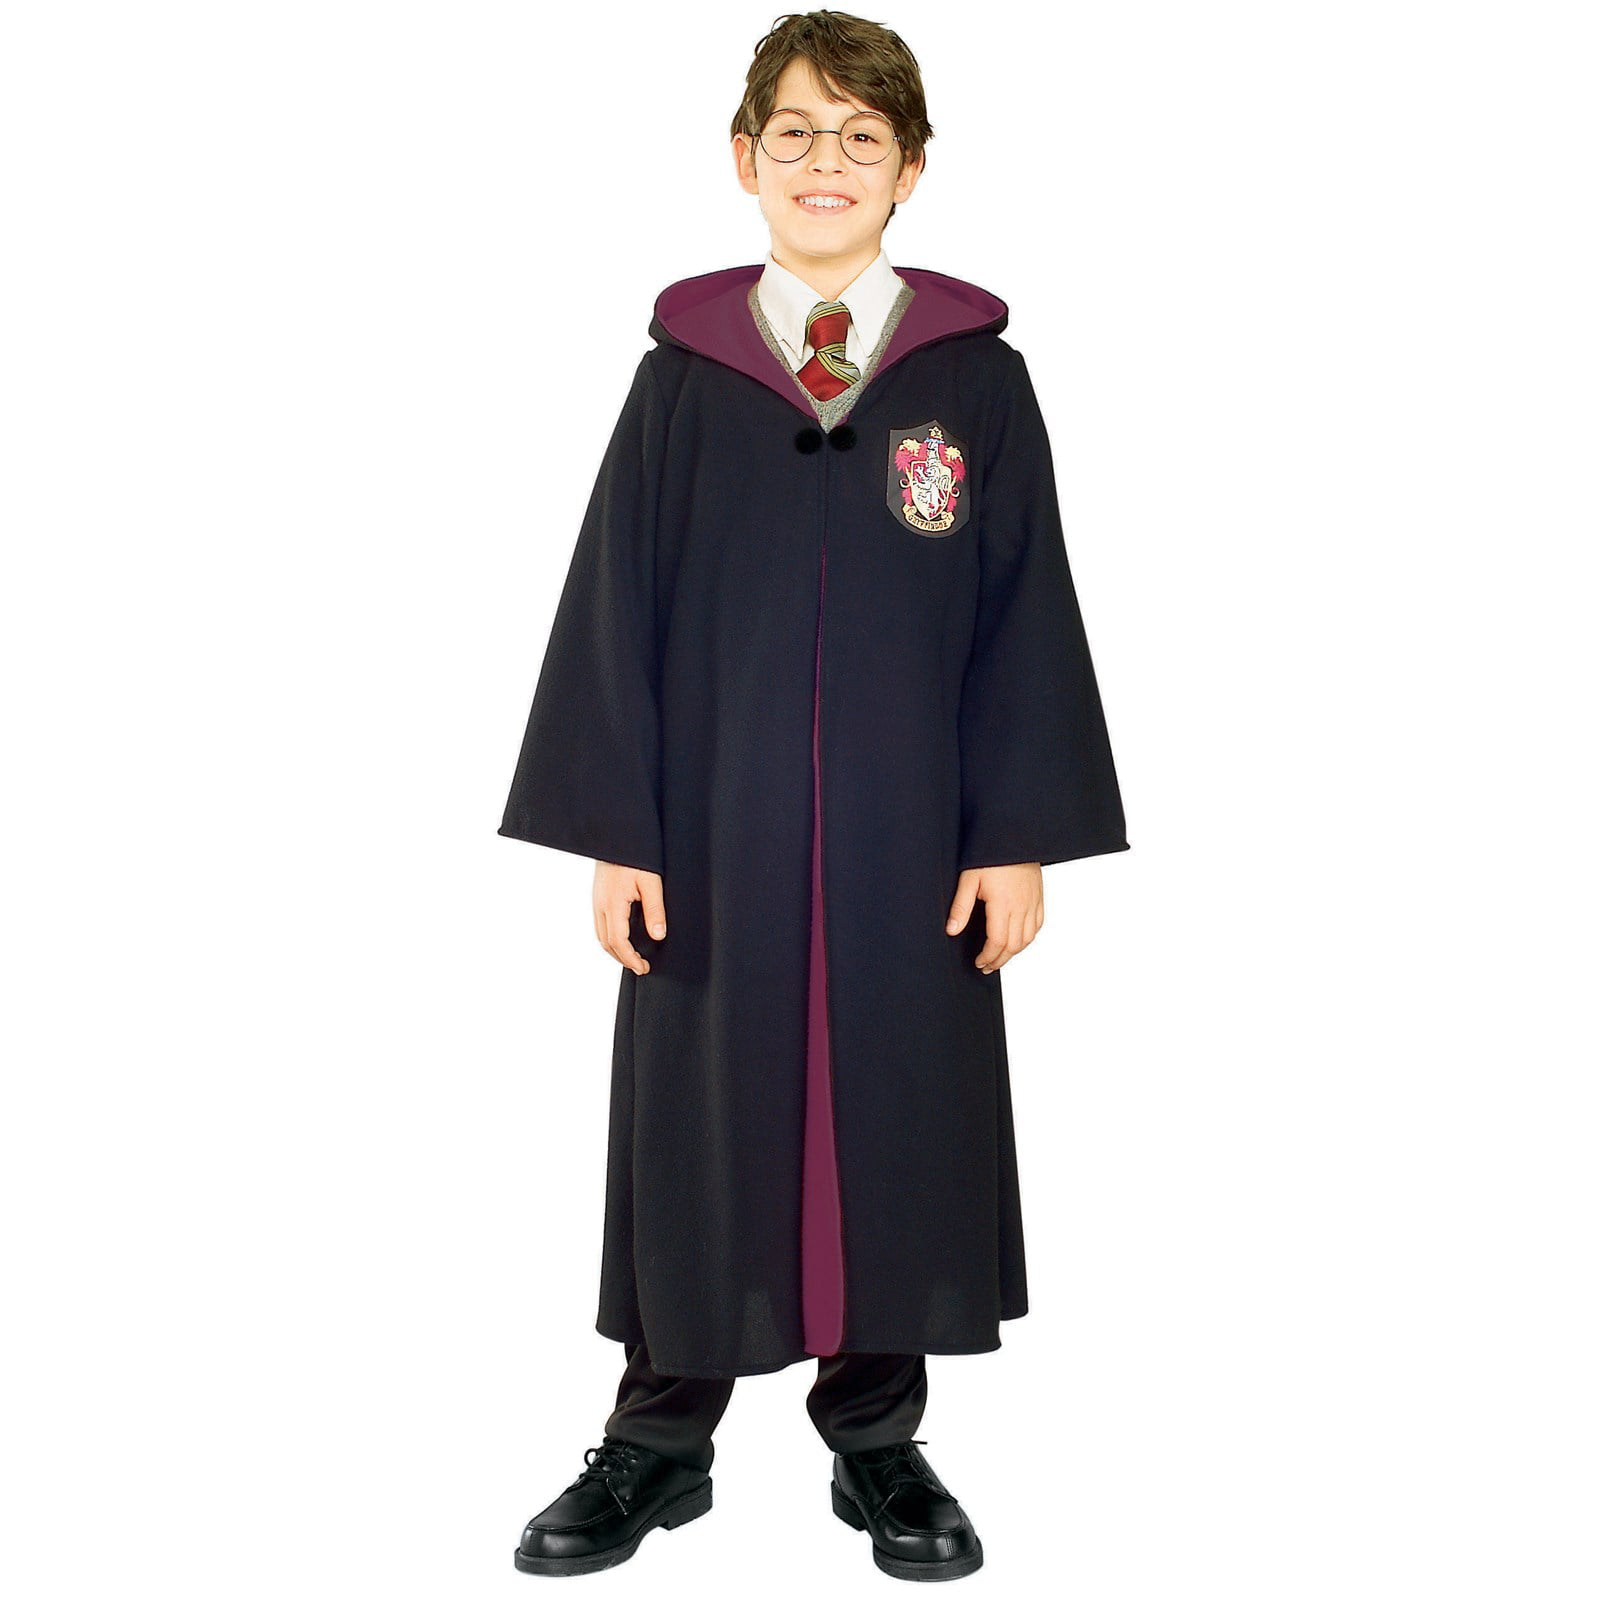 Boys Deluxe Harry Potter Robe Costume by Rubies